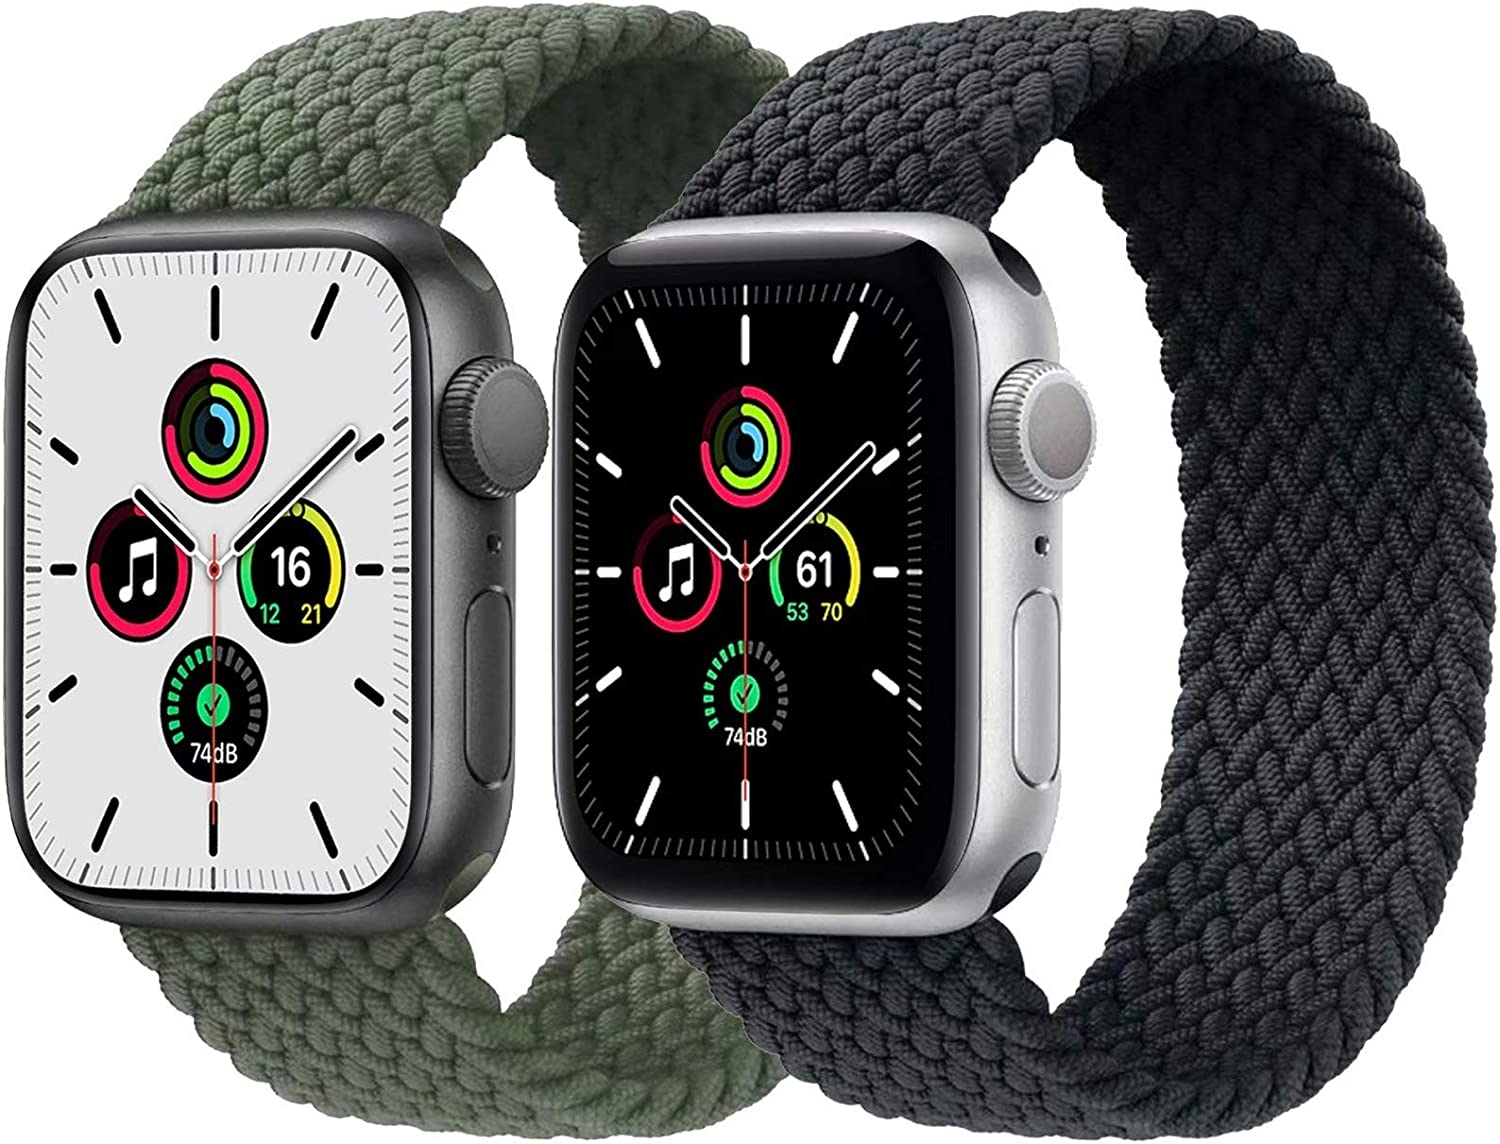 2-Pack Solo Loop Strap Compatible with Apple Watch Band 38mm 40mm,No Clasps No Buckles Stretchable Braided Sport Elastics Replacement Wristband for iWatch Series 6/5/4/3/2/1,SE,Green&Charcoal,9#